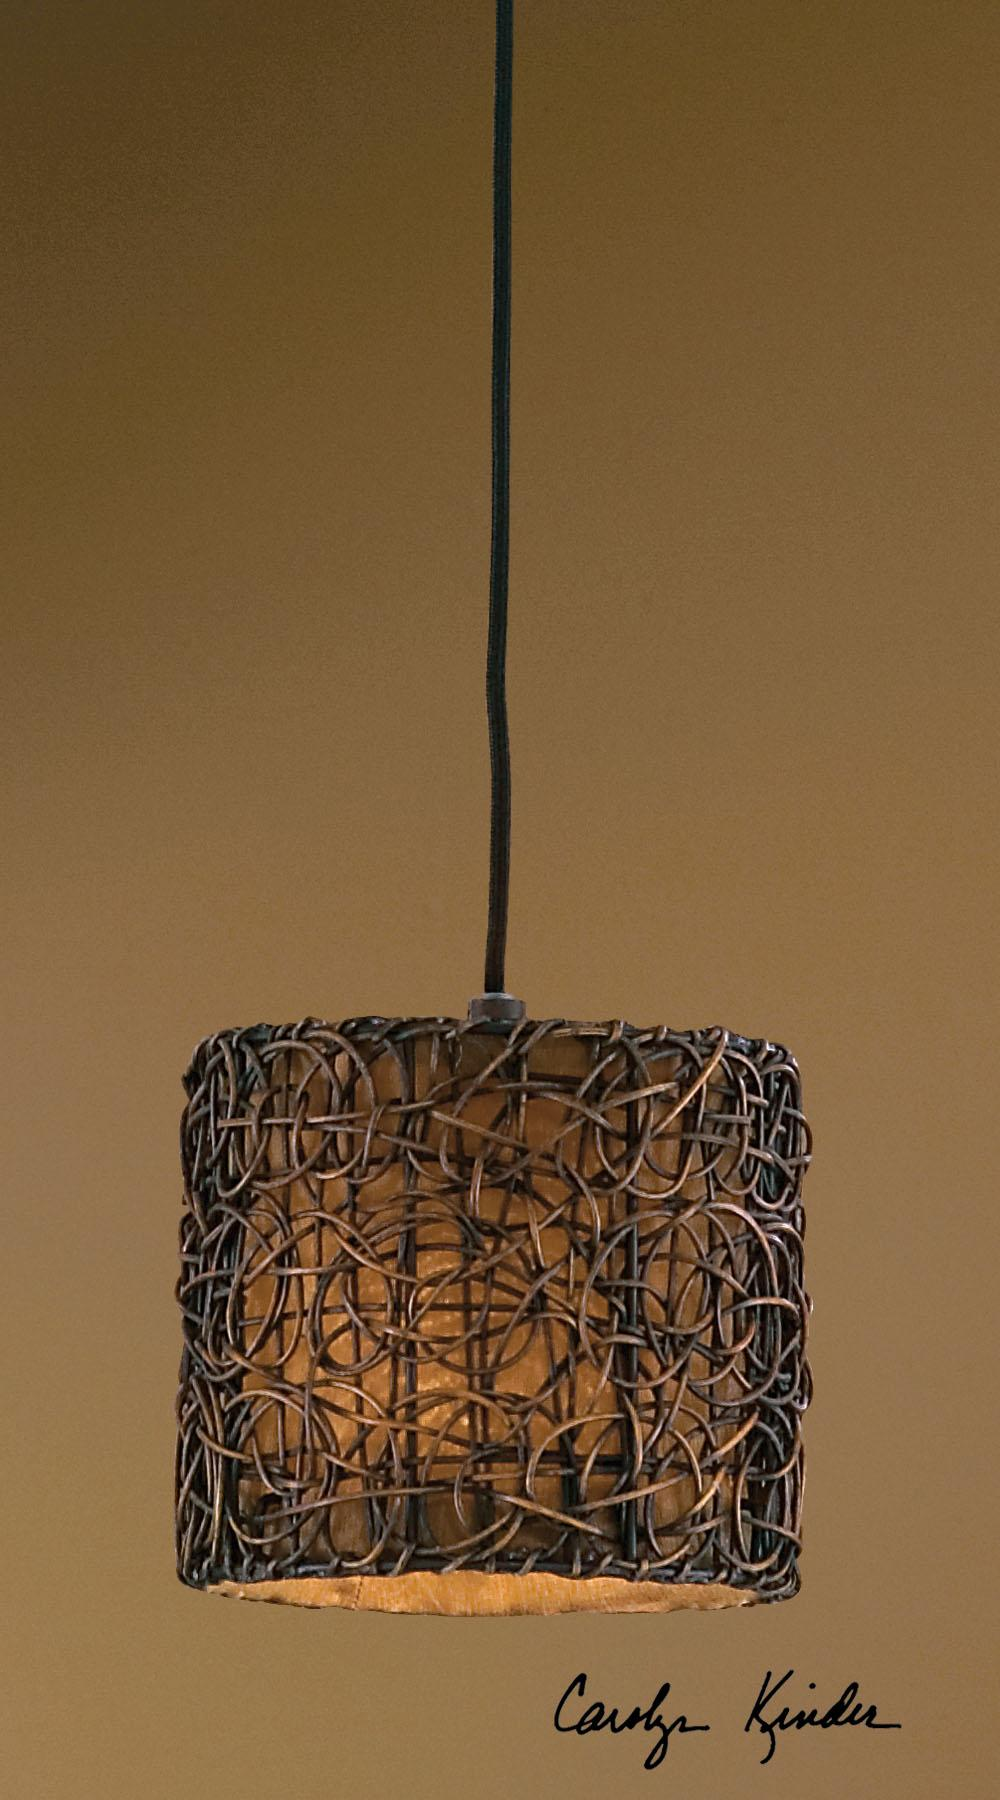 Uttermost Lighting Fixtures Knotted Rattan Mini Hanging Shade - Item Number: 21832